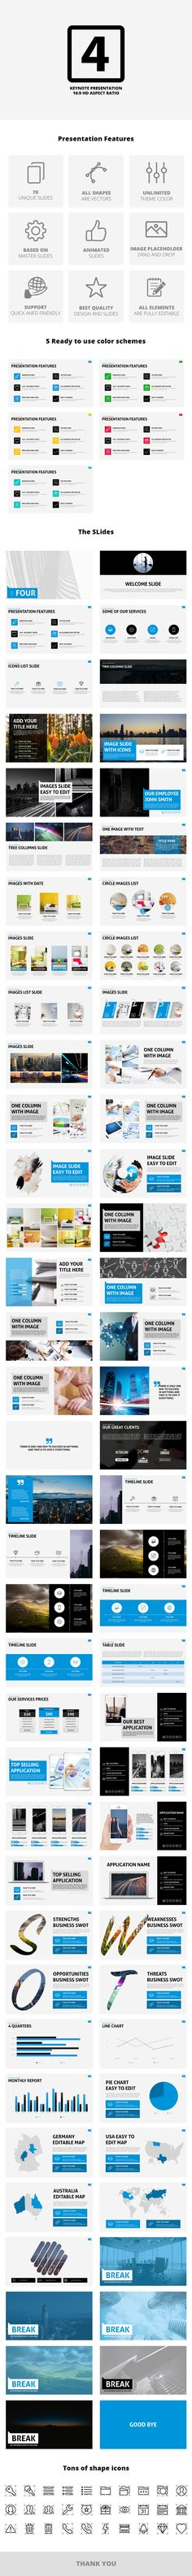 Startup Business Plan Google Slides Presenation Template  Startup